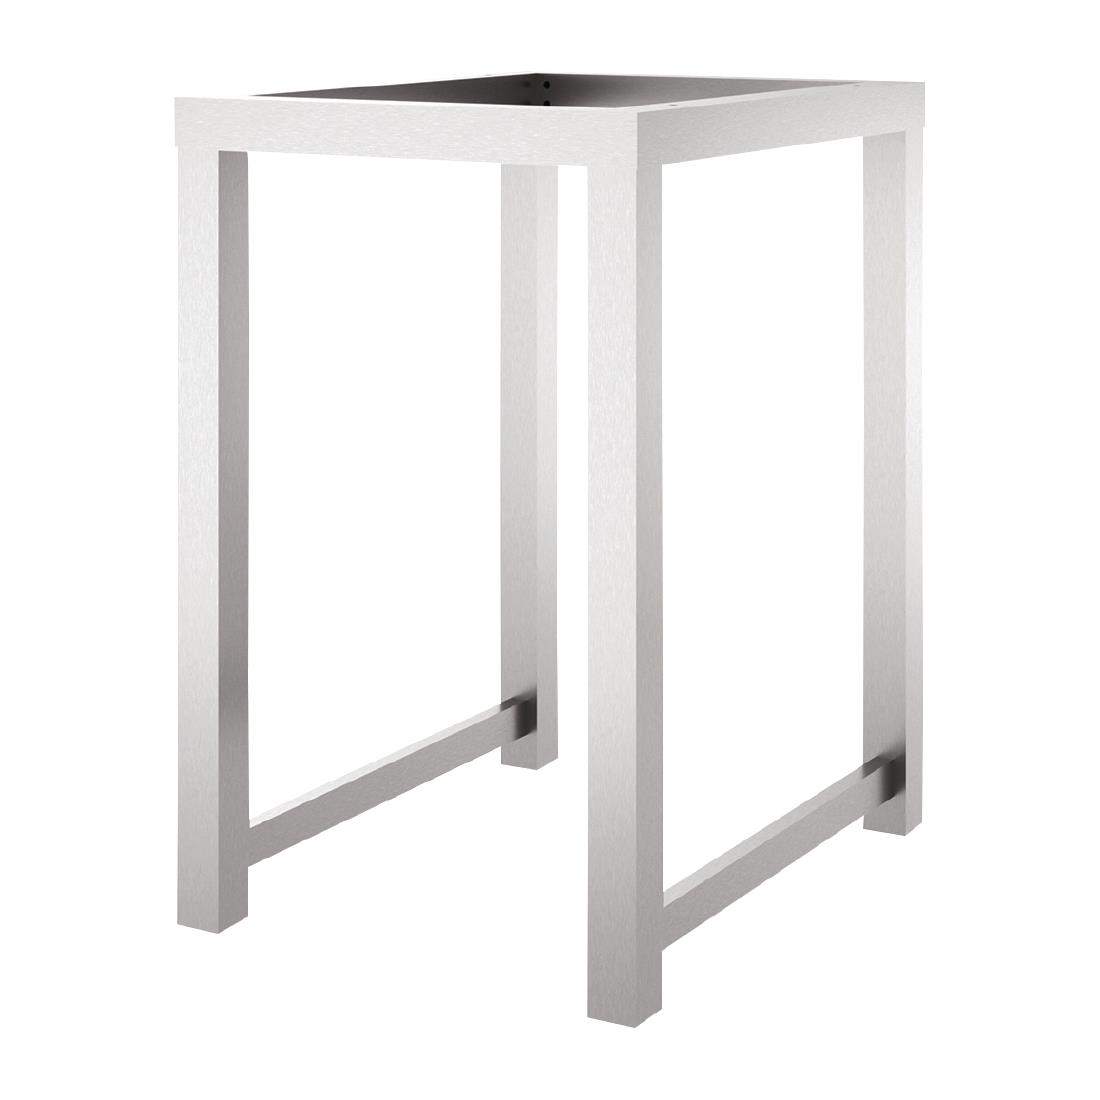 Image of Lainox Stainless Steel Stand CSR061